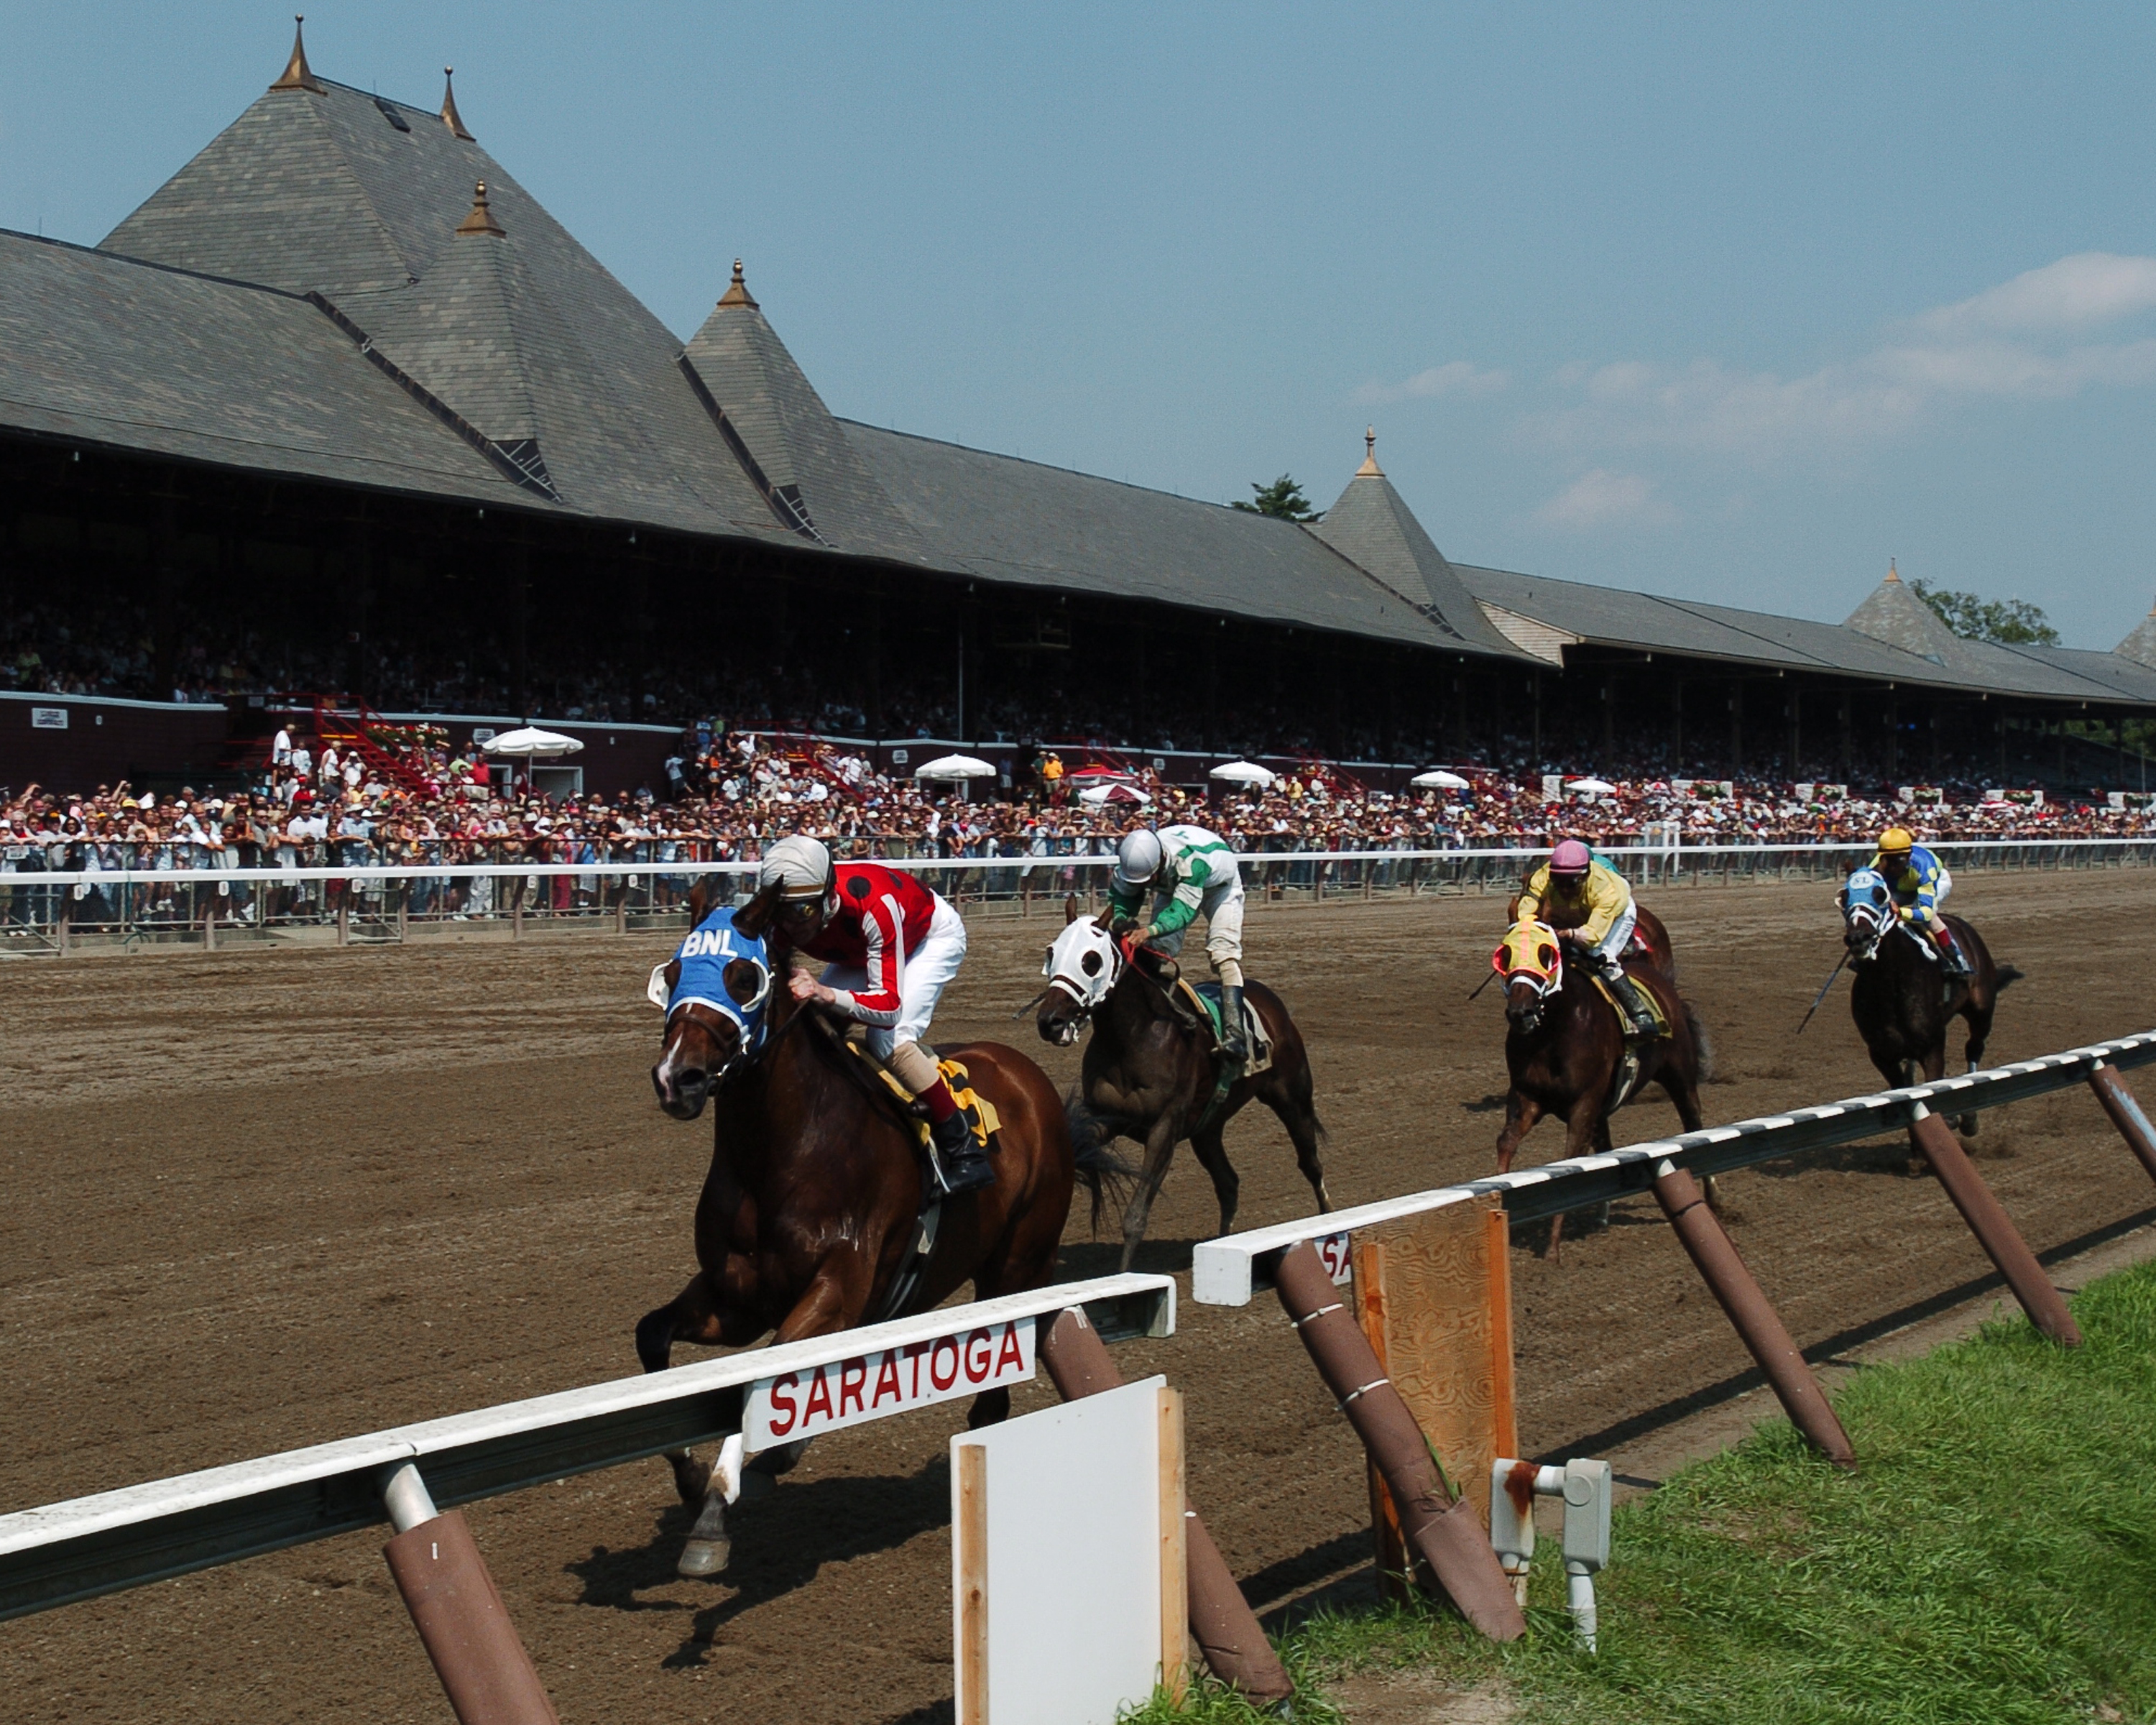 nyra open house: the perfect warm-up to the meet - saratoga horse